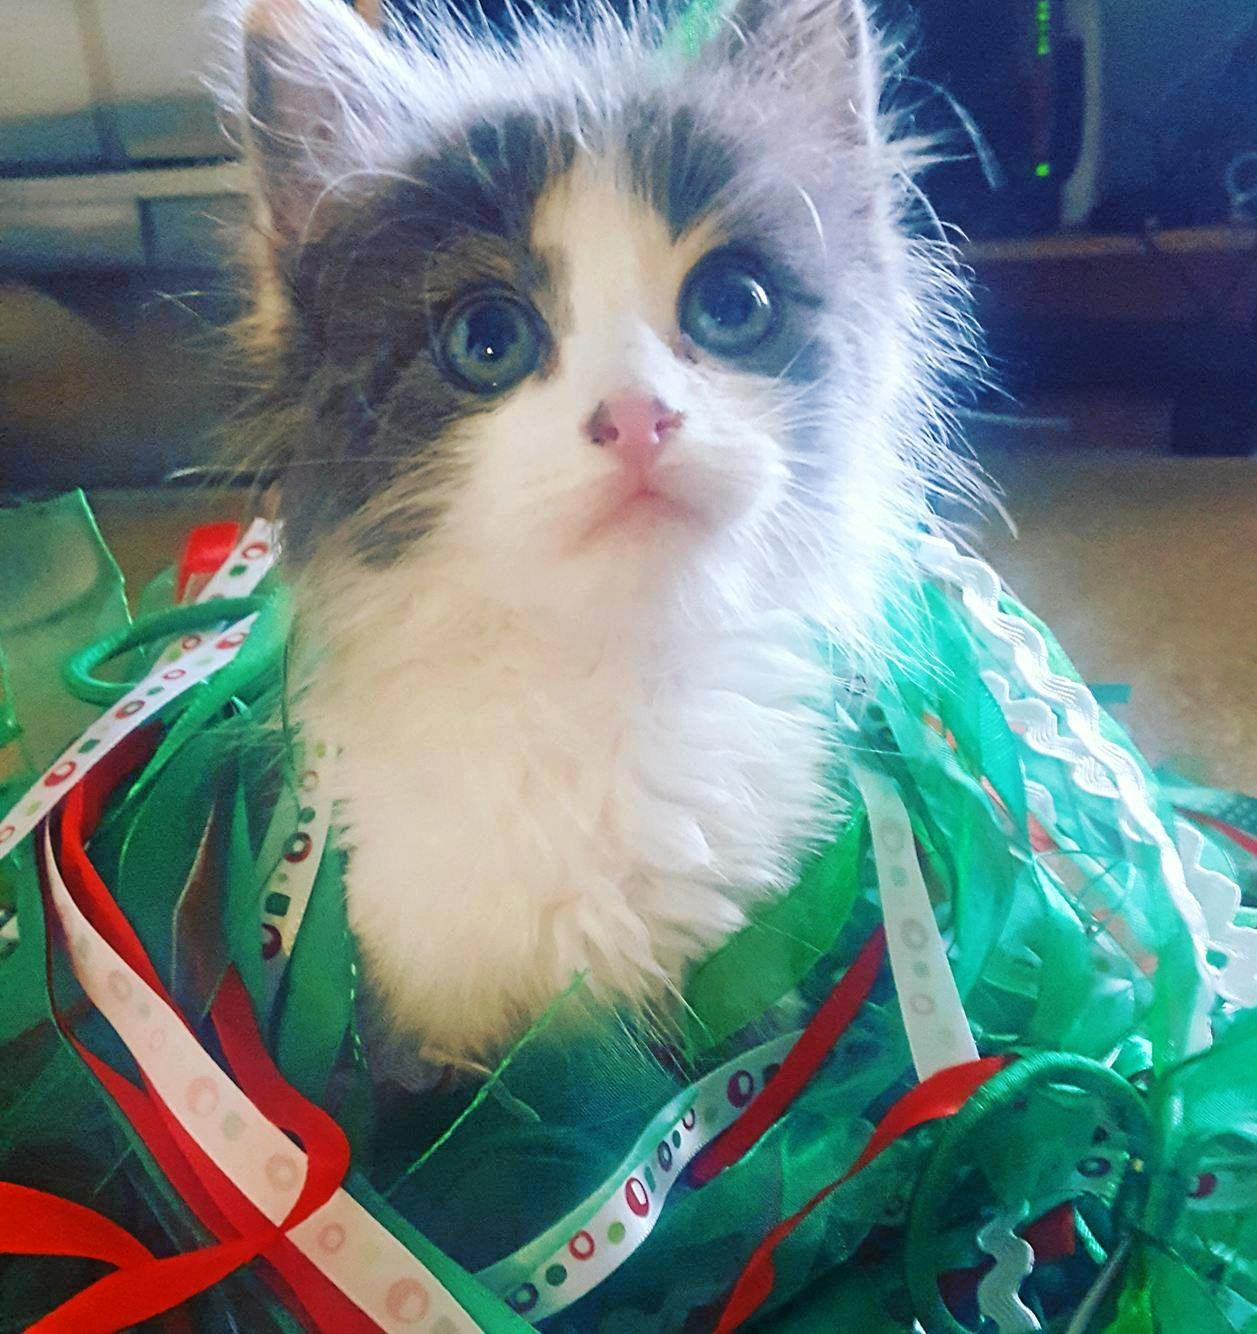 Kitten 'Princess Leia' looks festive in red and green.